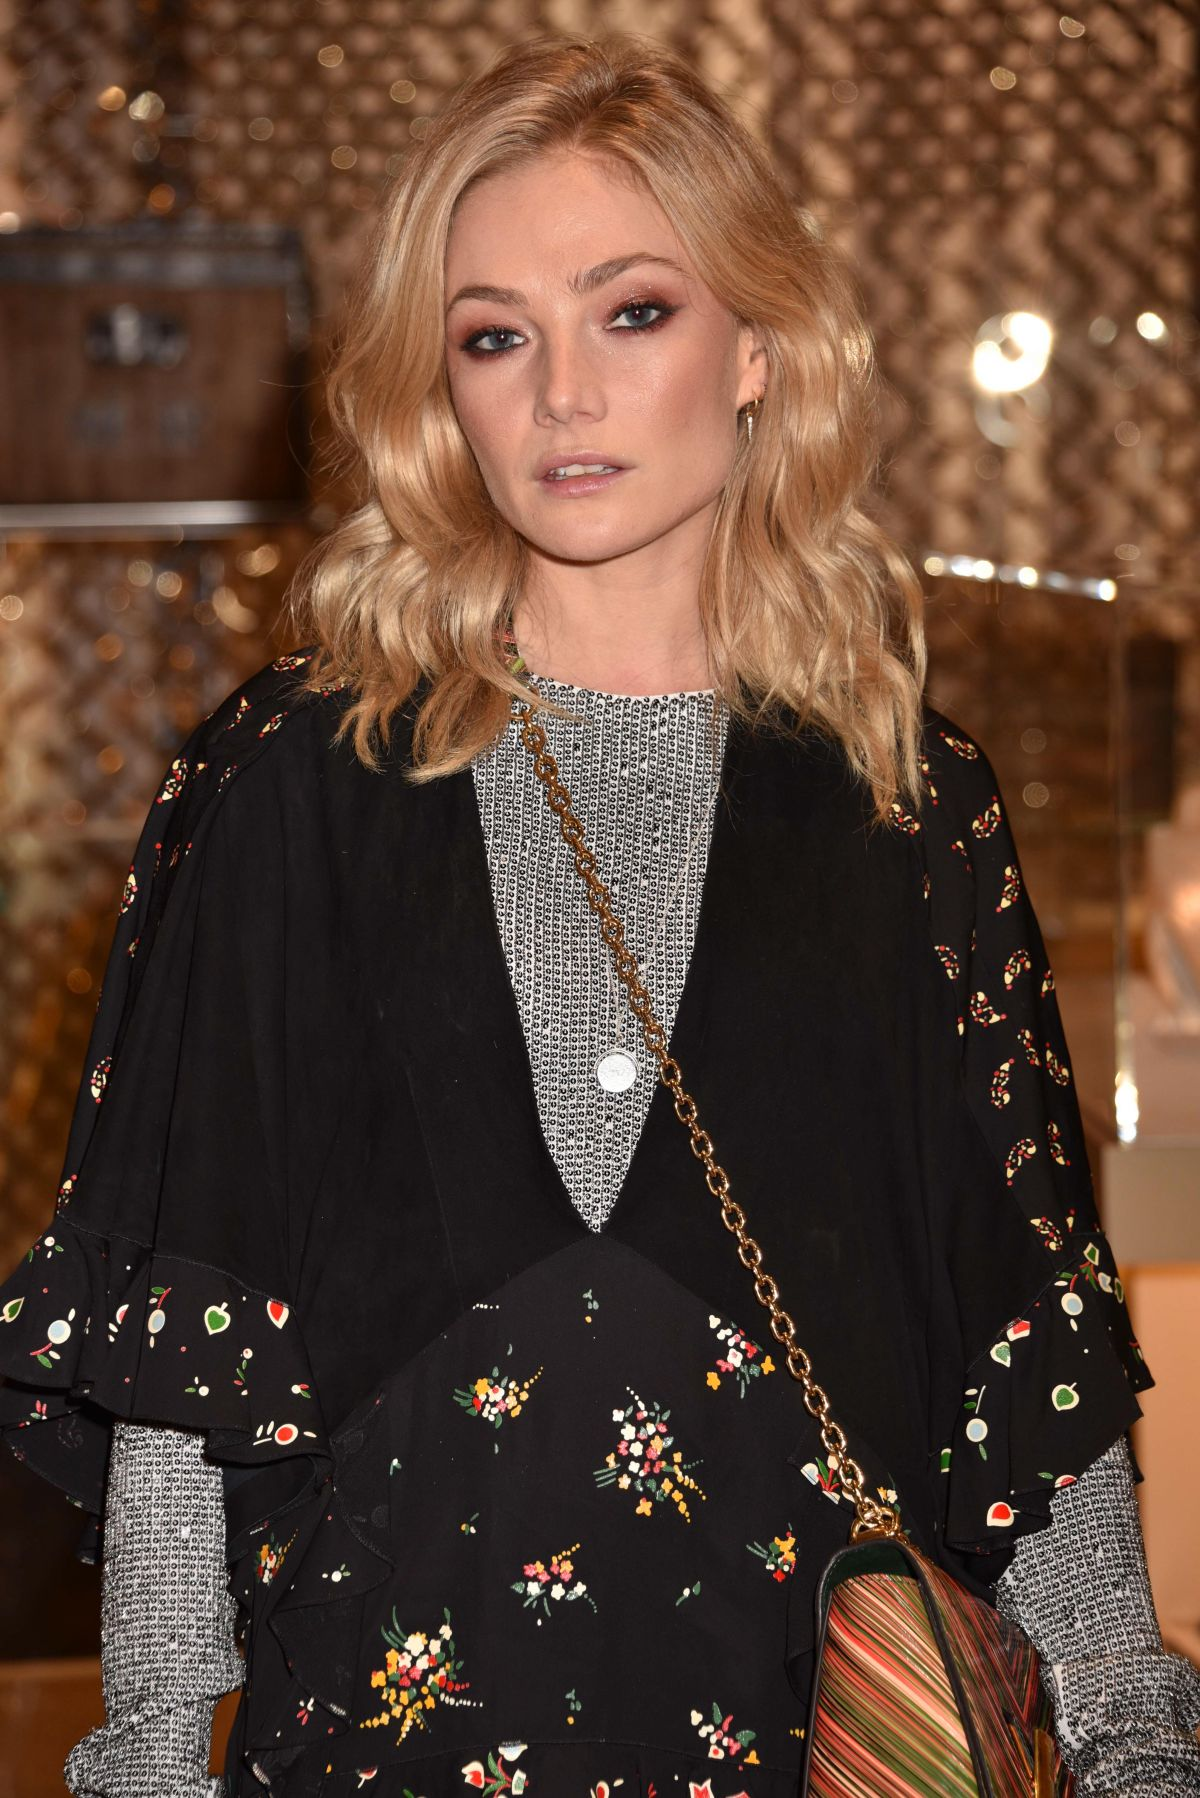 Clara Paget At Louis Vuitton X Vogue Party In London 11 21